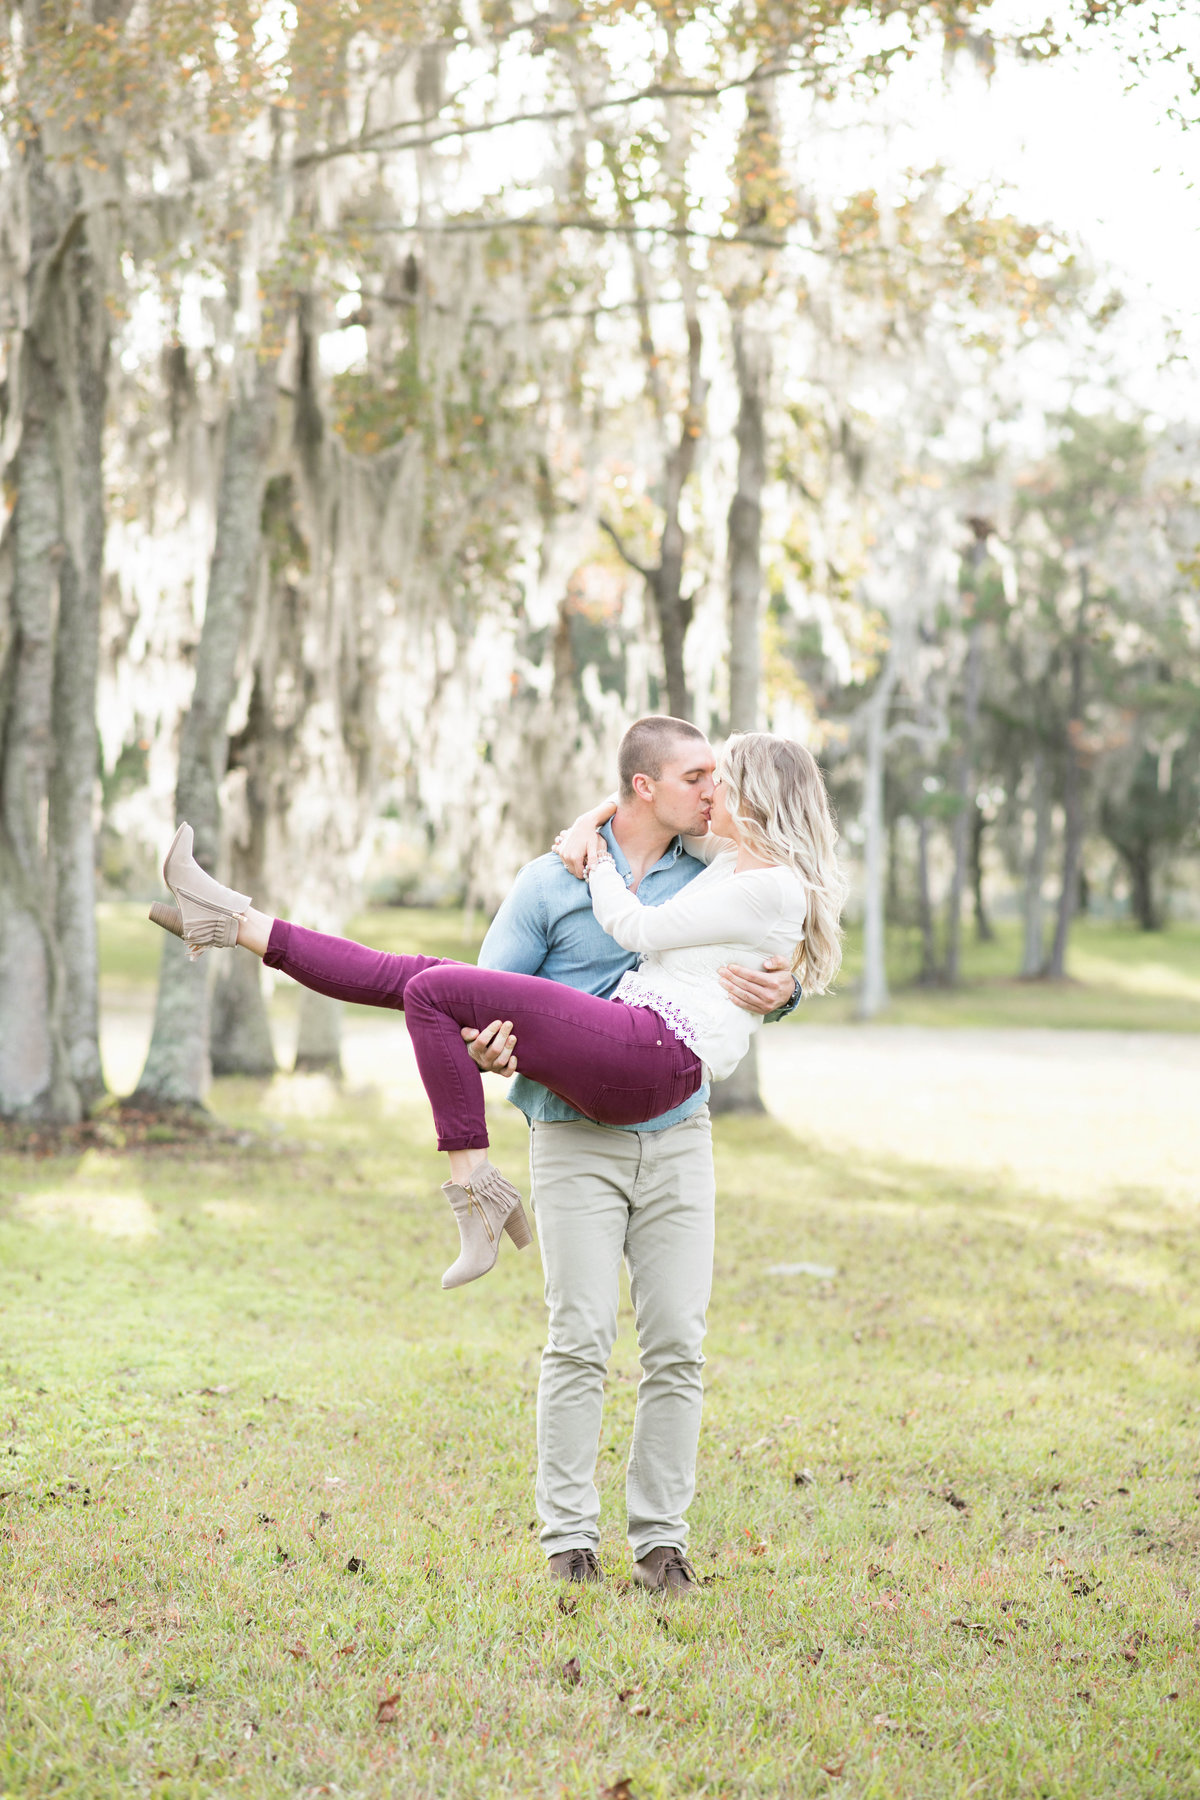 Leslie Page Photography - Central Florida Photographer - Tampa, Orlando, Gainesville, St. Augustine Wedding and Portrait Photographer - 17